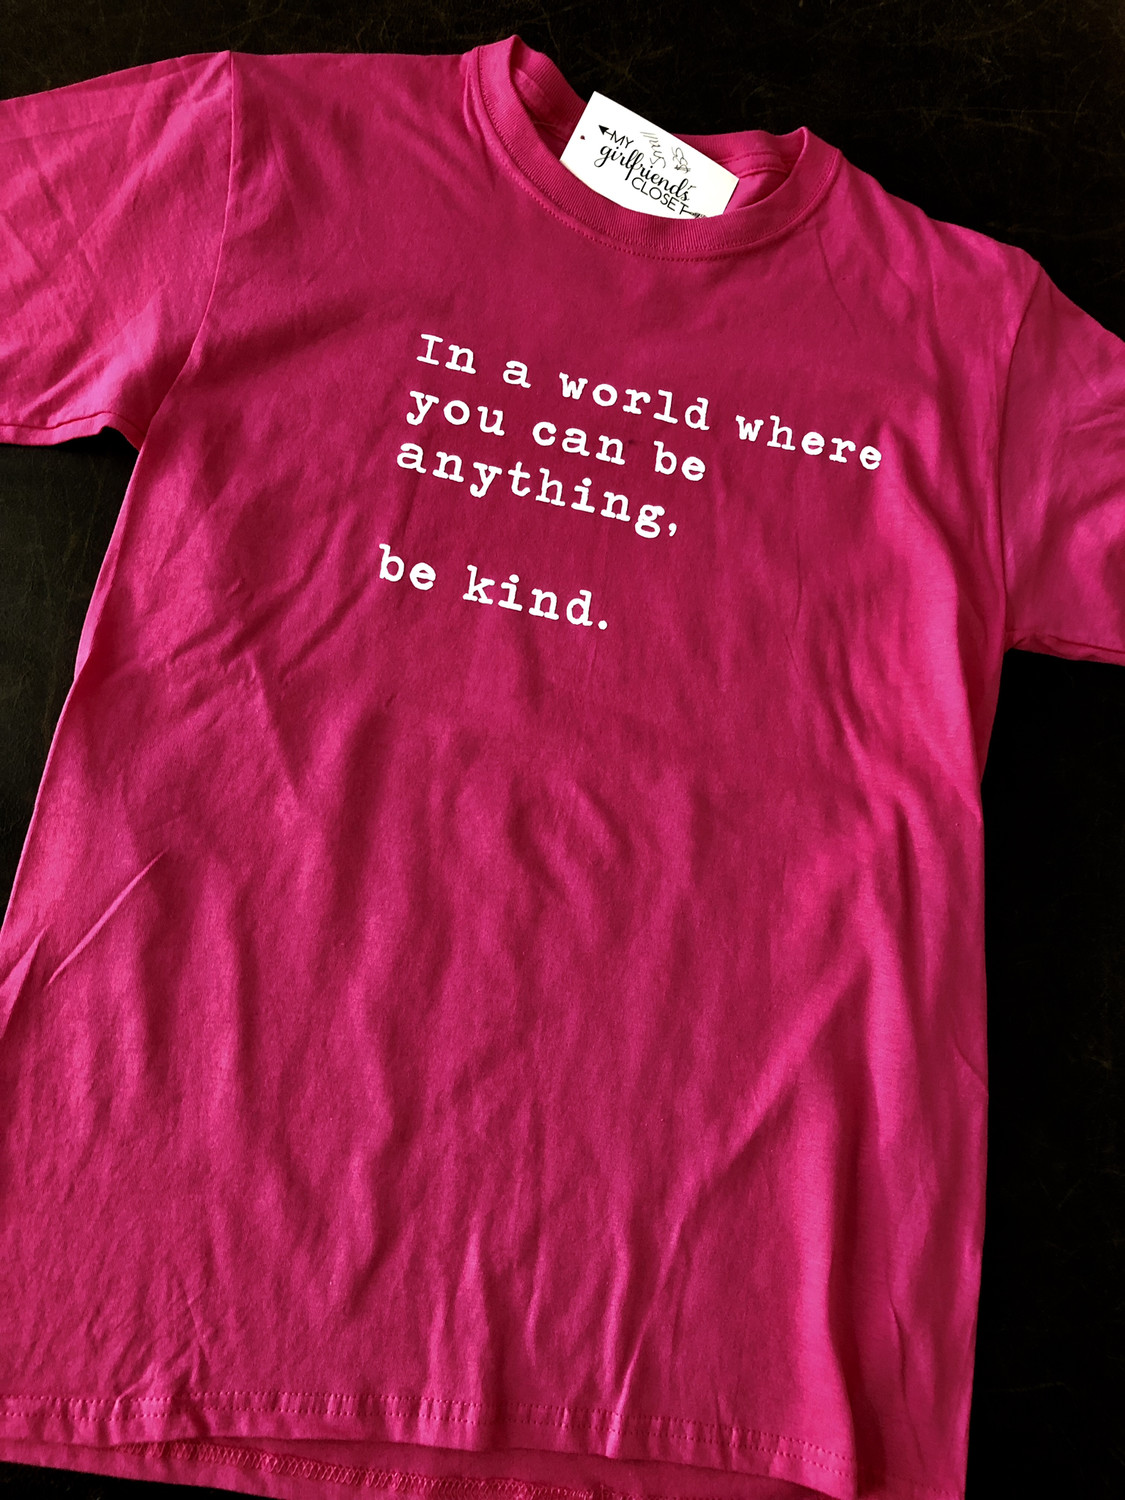 Be Kind ~ PINK SHIRT ANTI BULLY DAY Collection ~Fuschia Pink